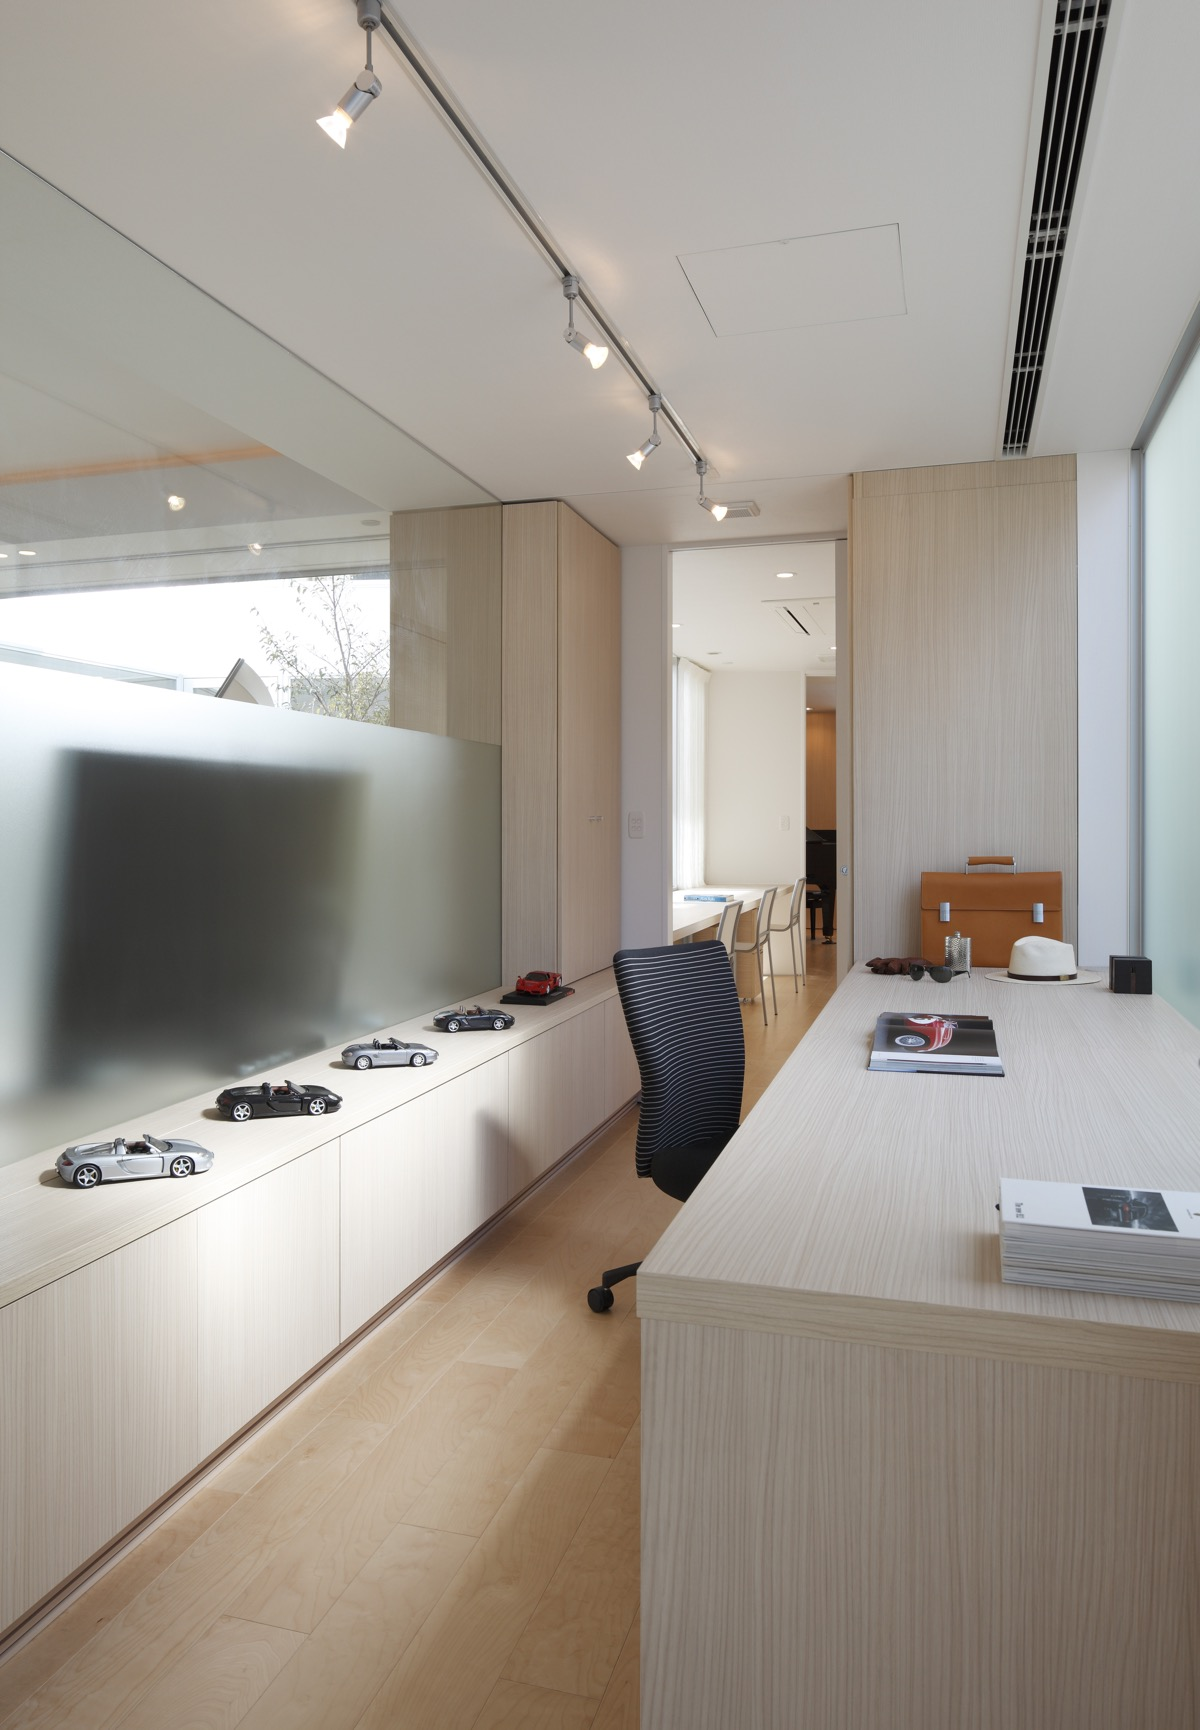 Japanese Home Fusing Modern And Traditional Ideas images 24